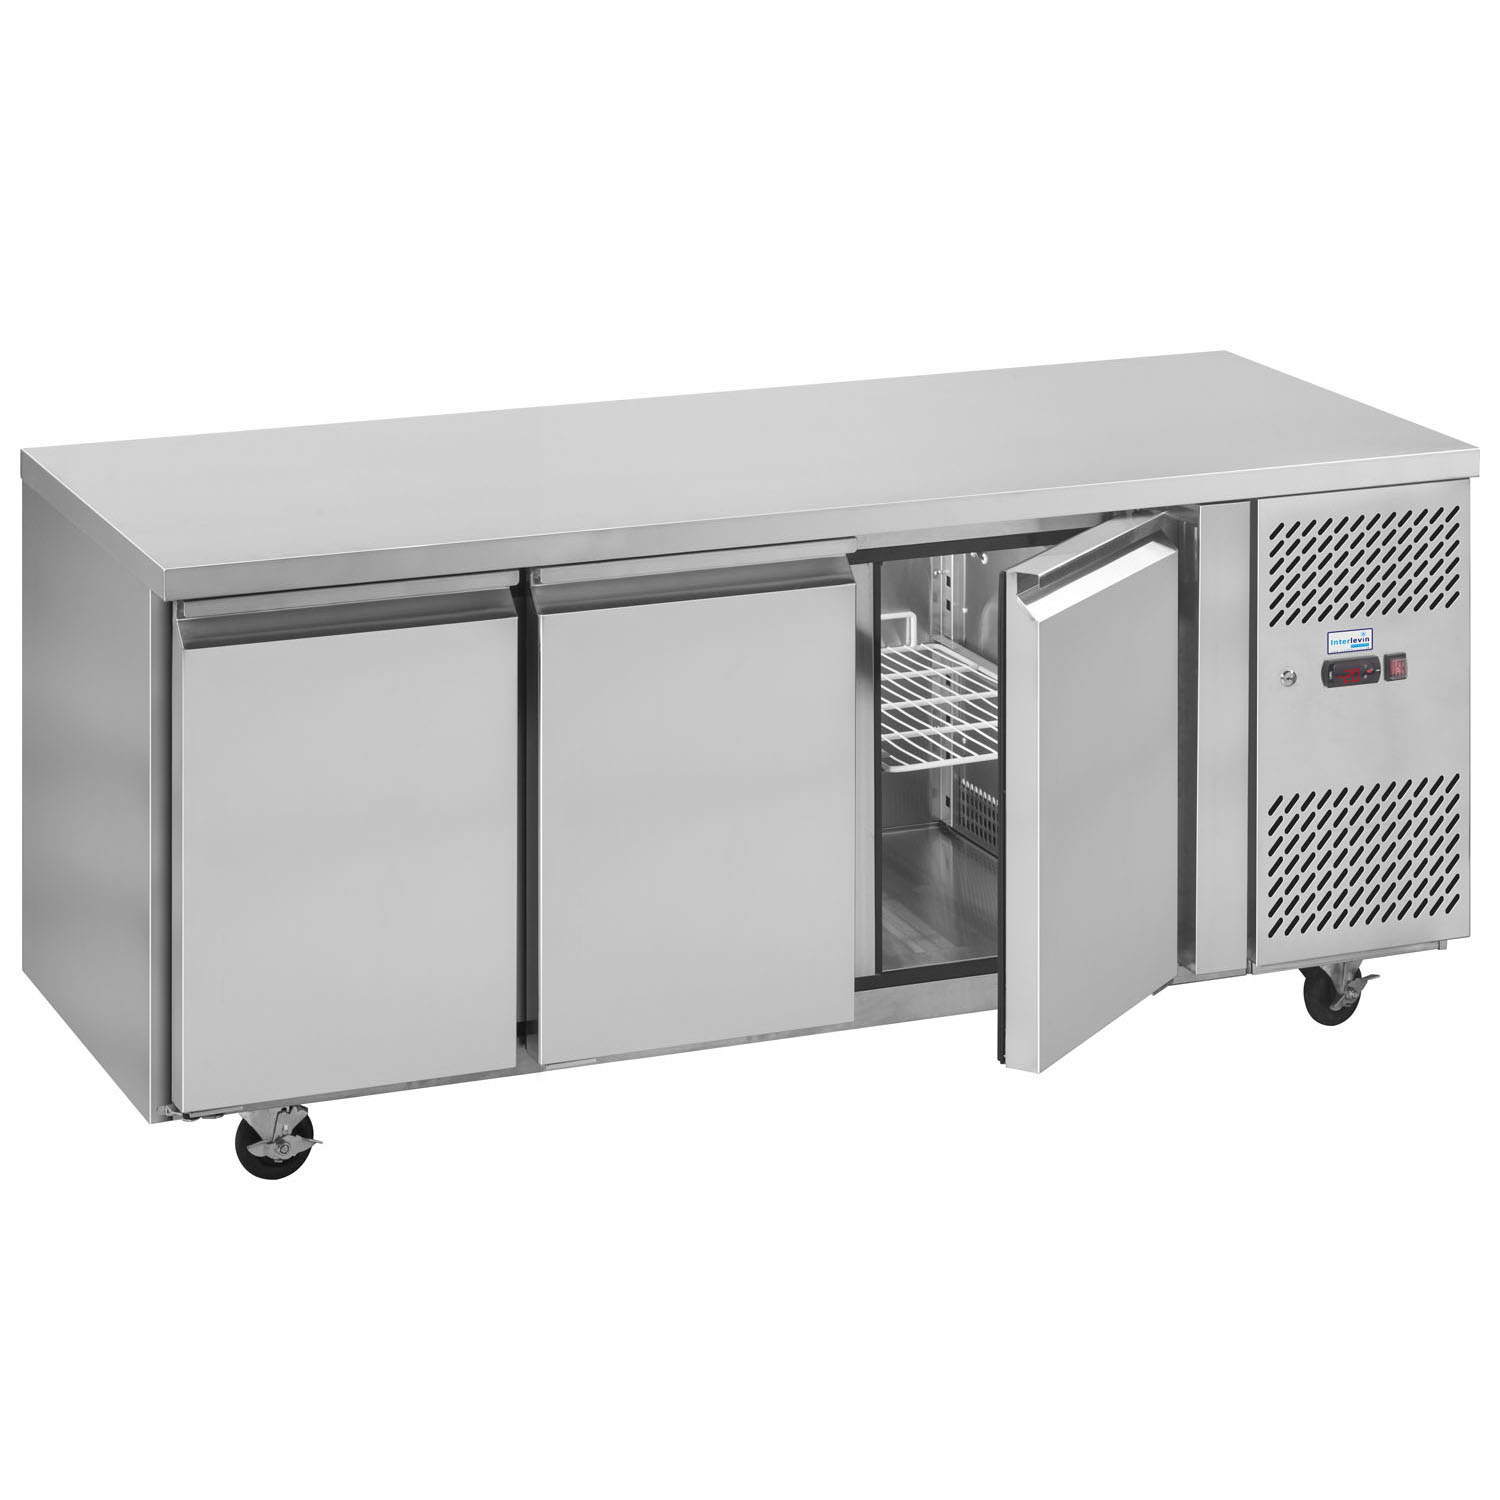 An image of Interlevin PH30F Freezer Prep Counter